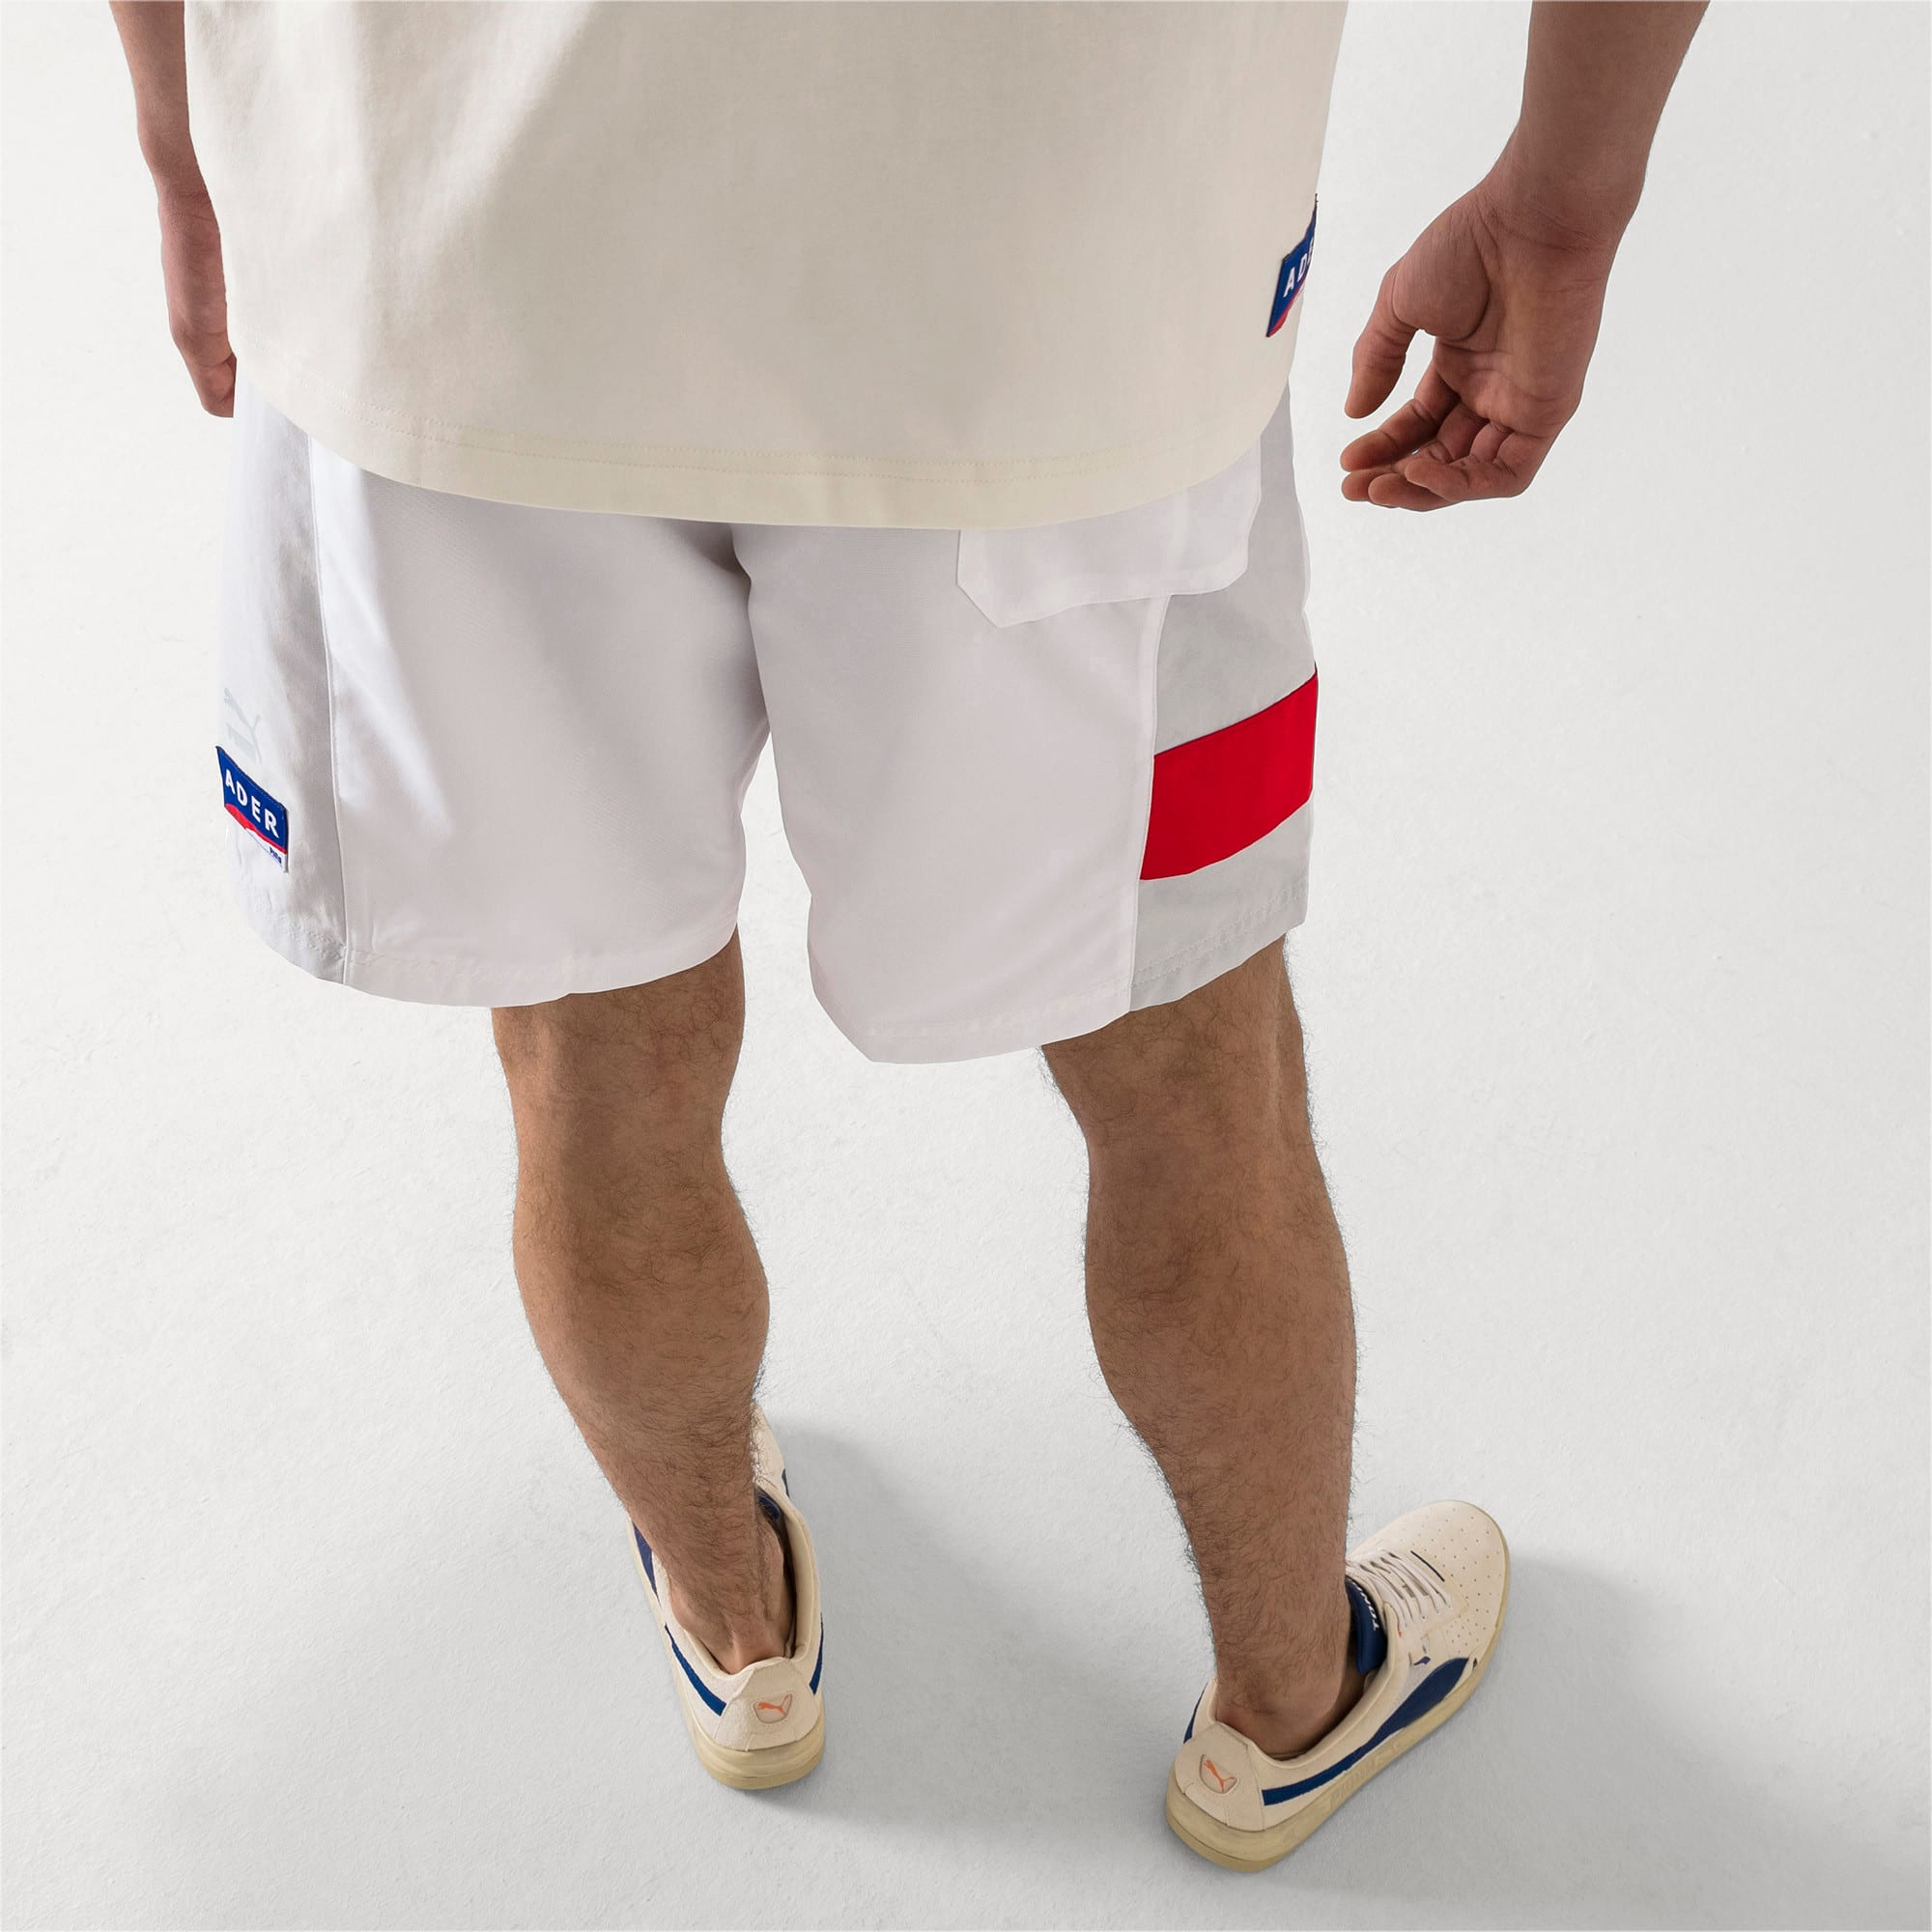 Thumbnail 3 of PUMA x ADER ERROR Shorts, Puma White, medium